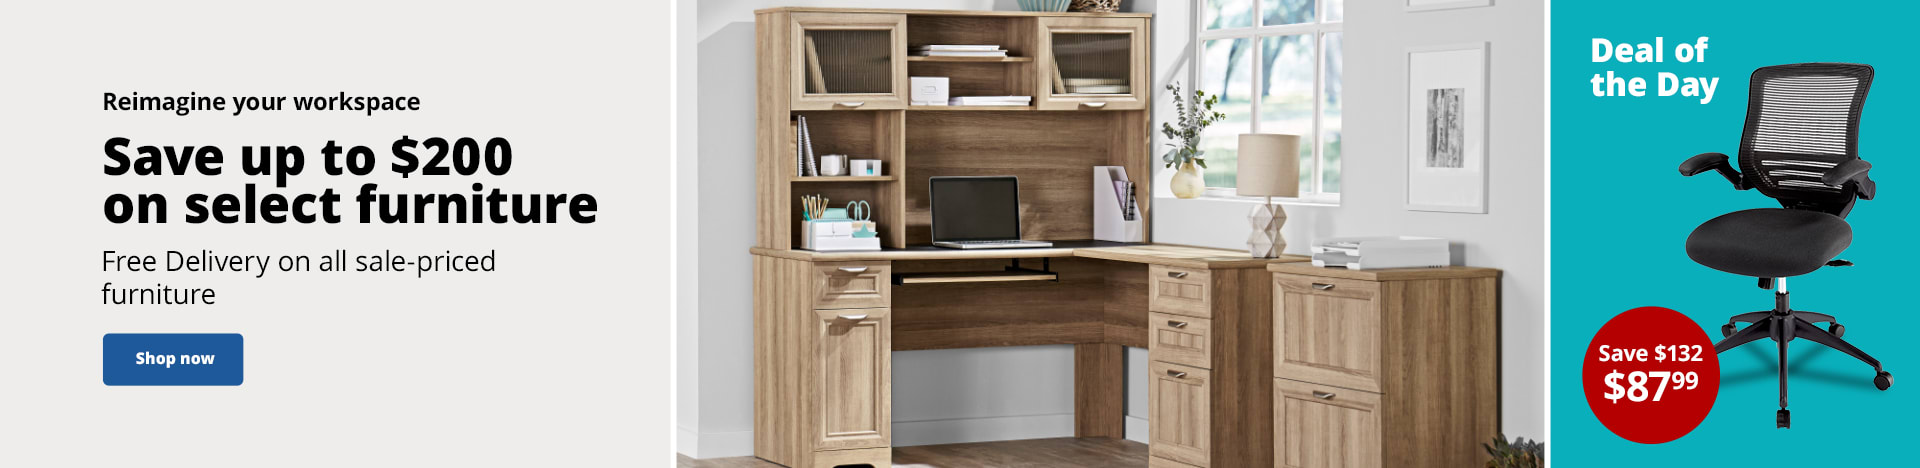 Save up to $200 on select furniture | Free Delivery on all sale-priced furniture